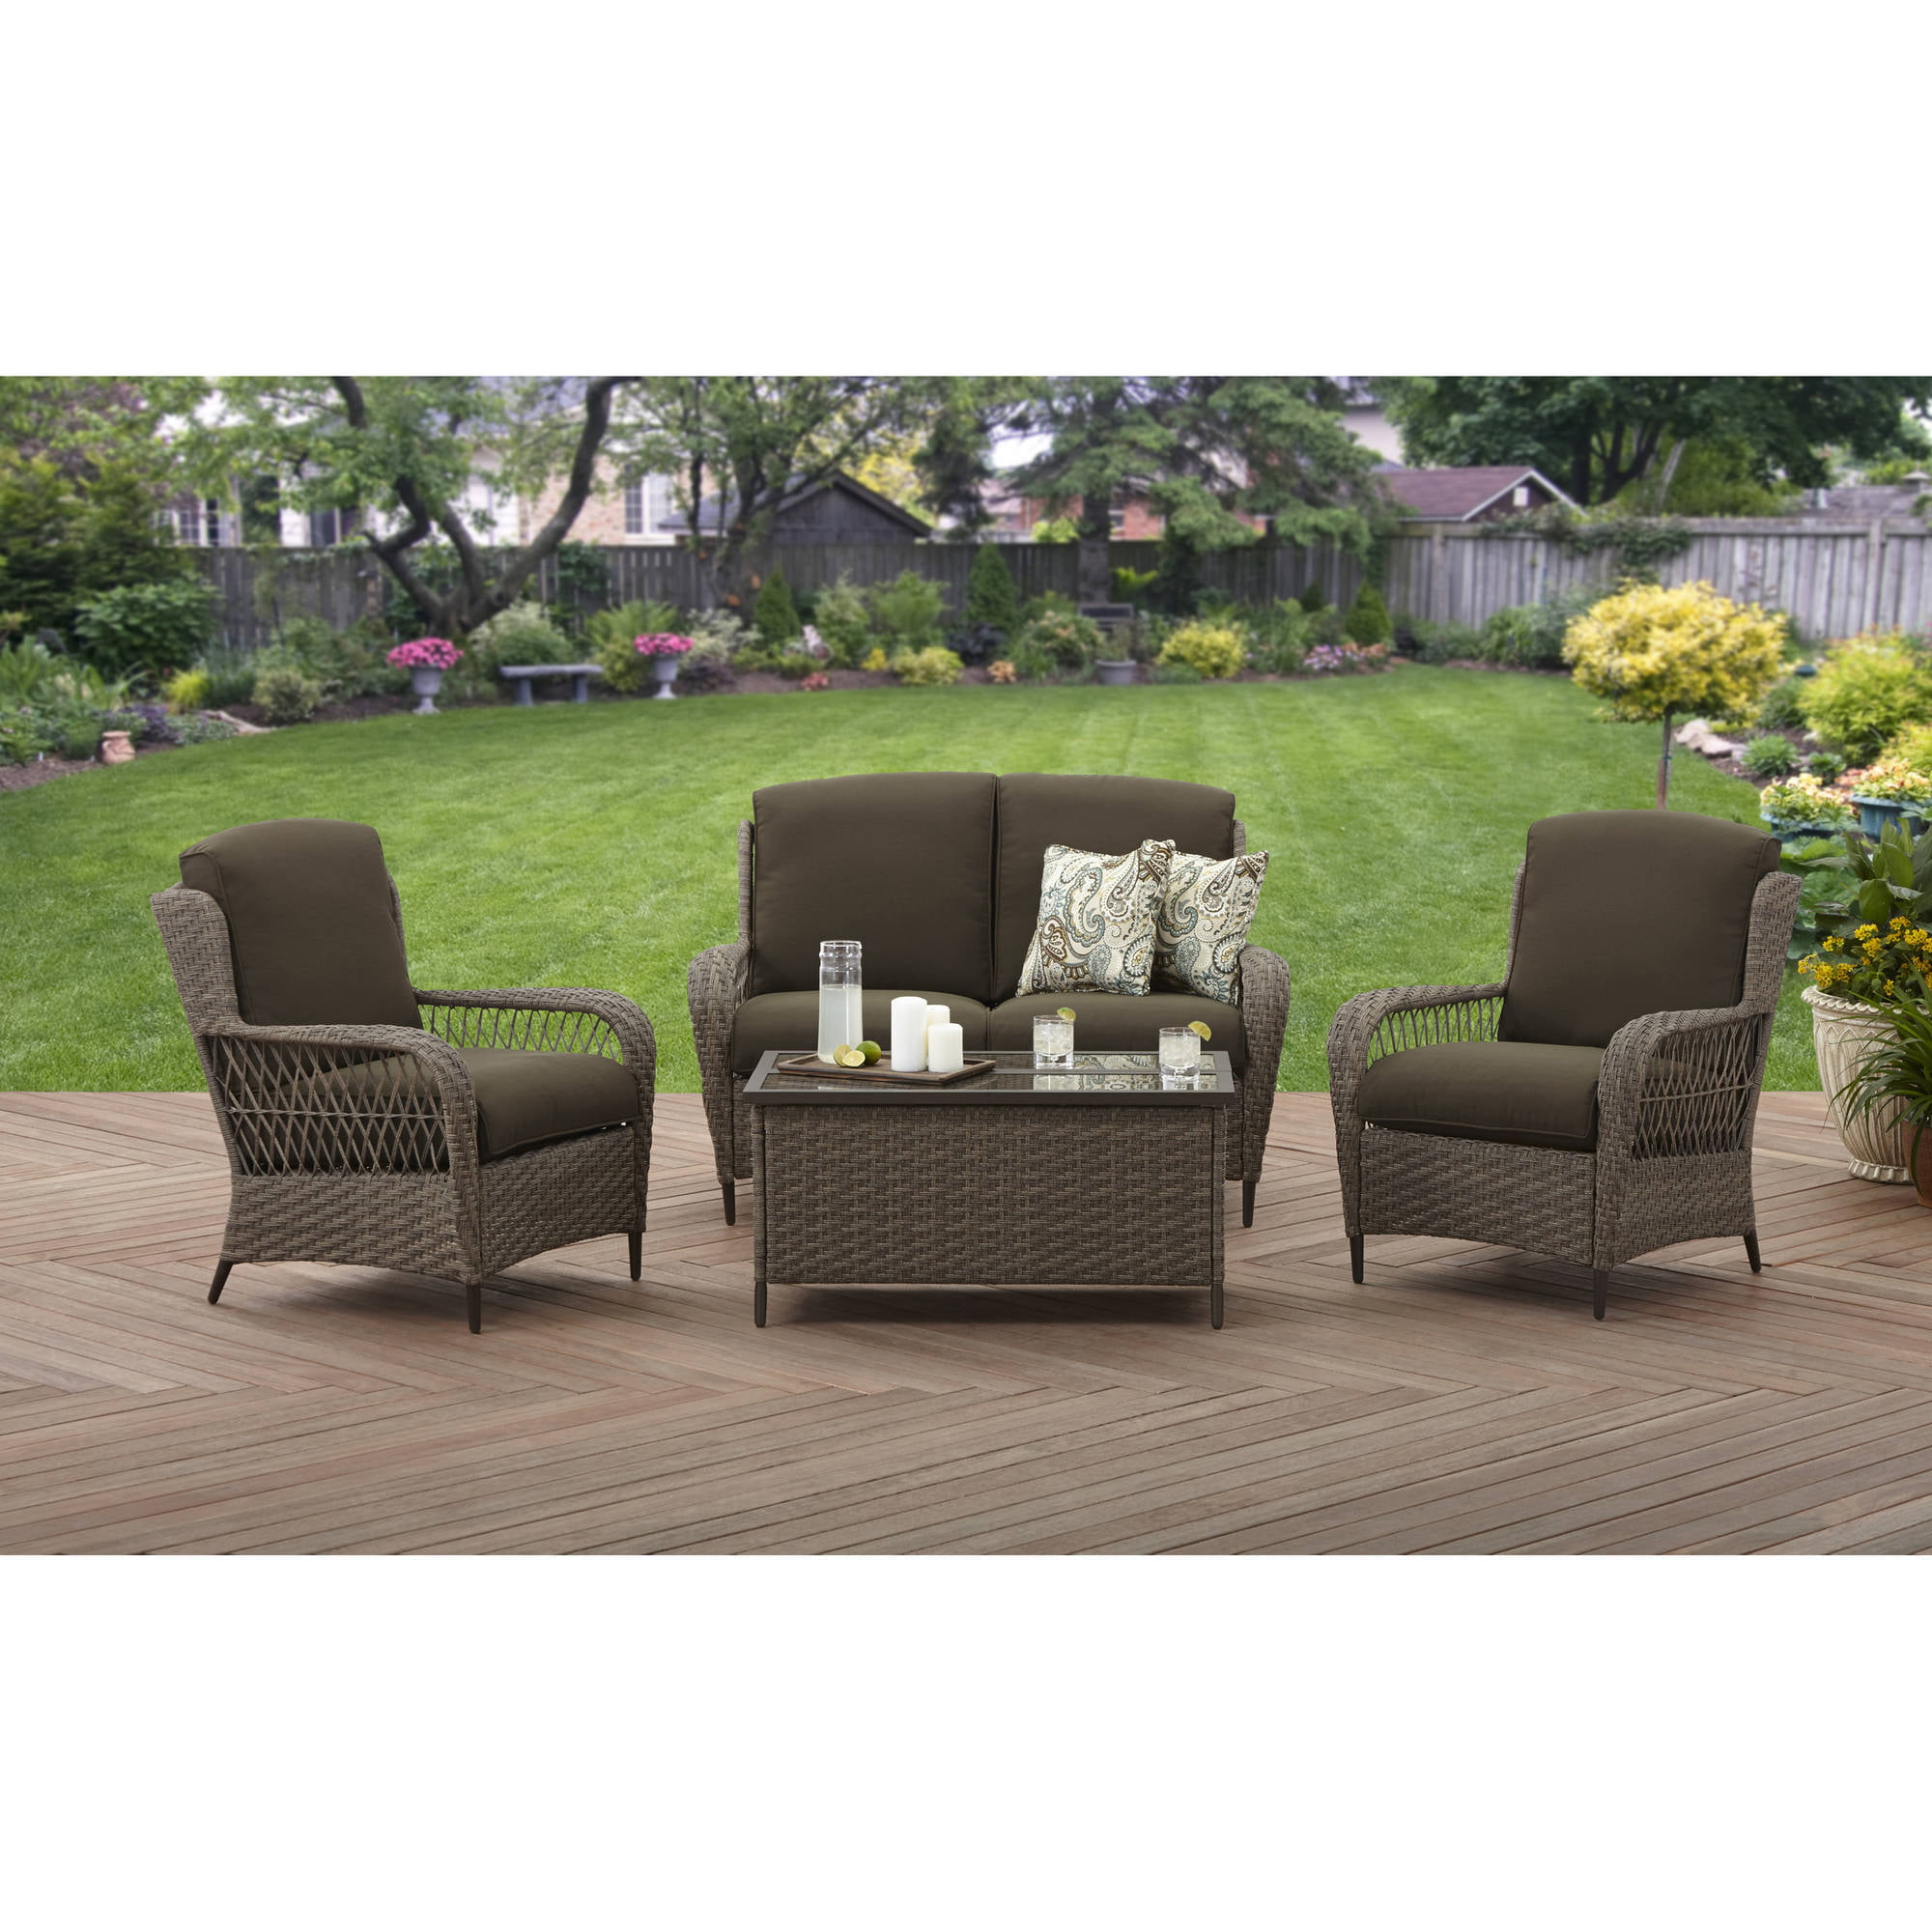 Better Homes and Gardens Manaville Wingback 4 Piece Conversation